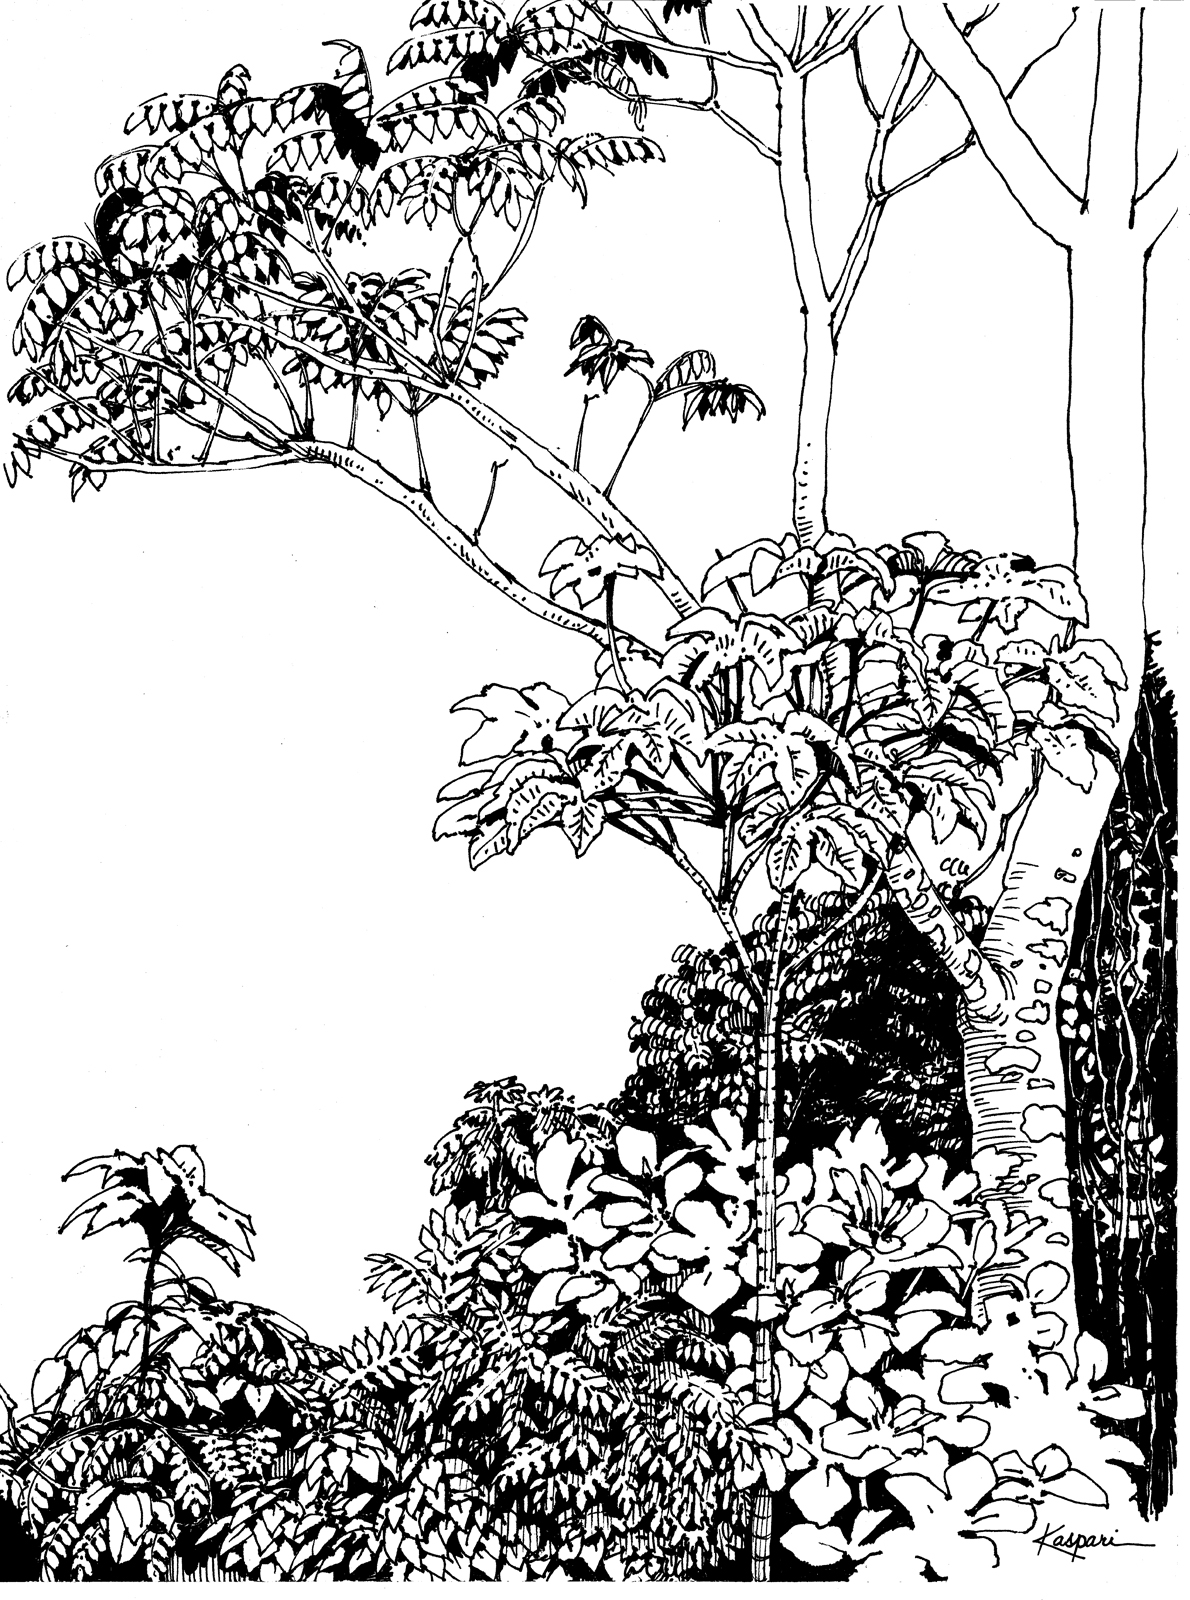 Drawn rainforest tropical forest The Pen Drawing Ink Plein